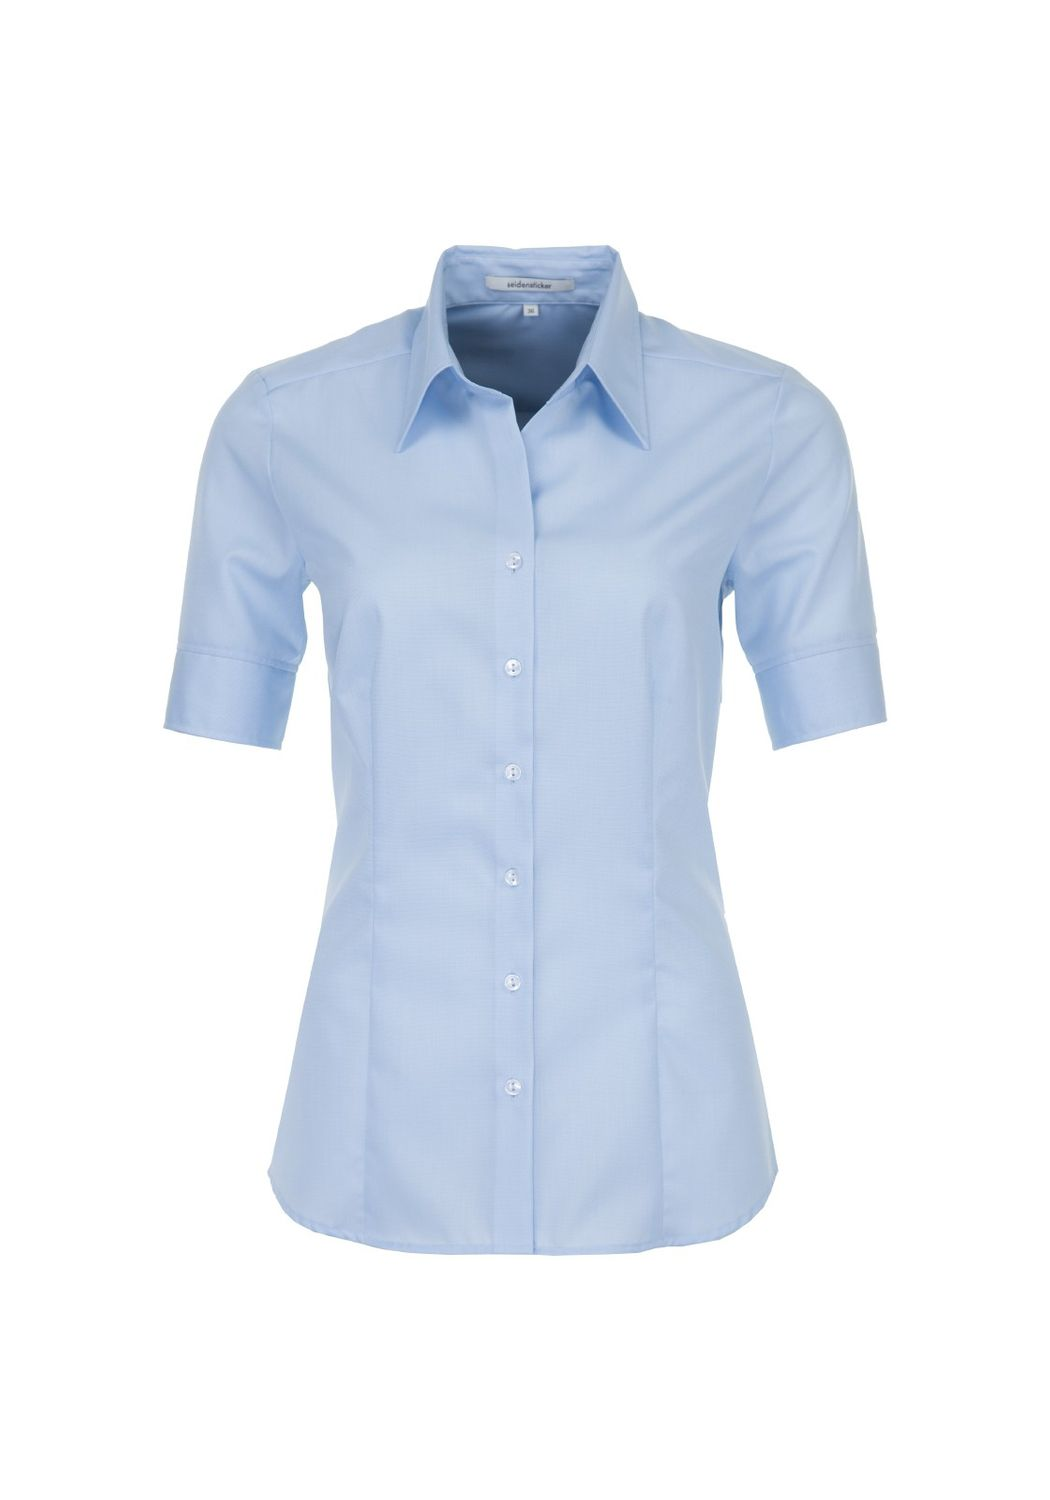 Seidensticker - Regular Fit - Damen City-Bluse 1/2-lang (60.080605) 001